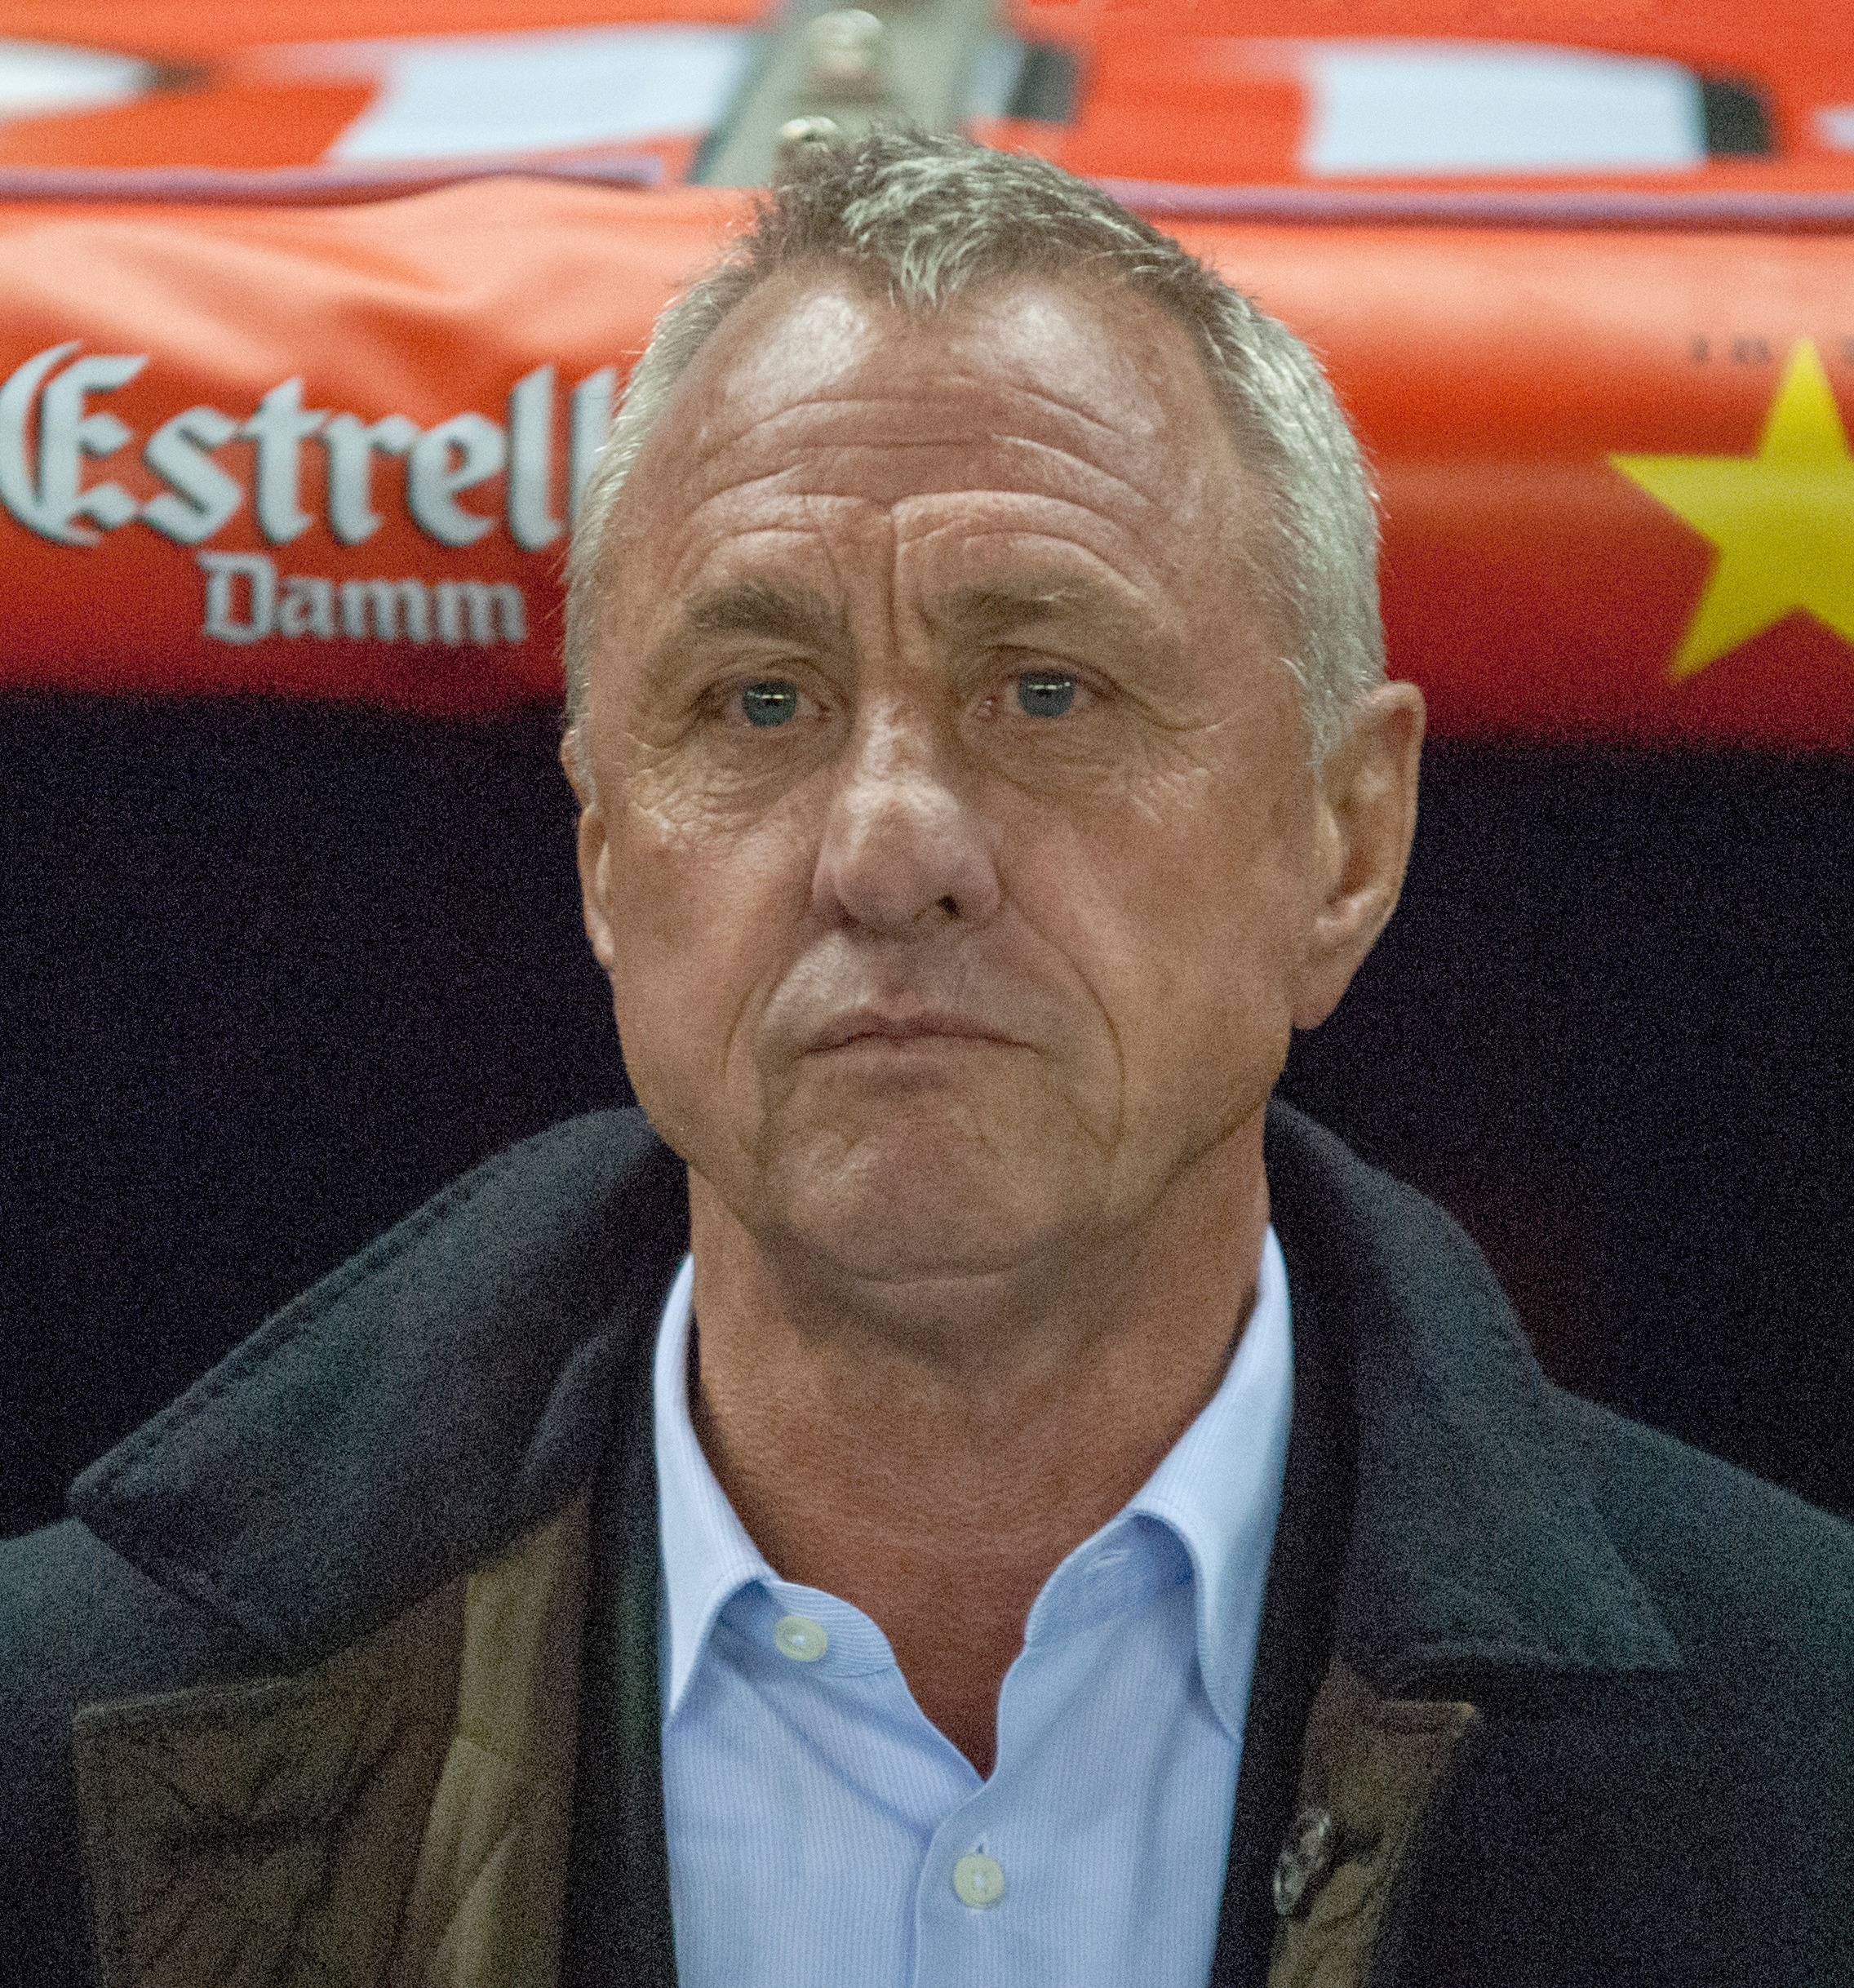 The 70-year old son of father Hermanus Cornelis Cruijff and mother(?), 180 cm tall Johan Cruijff in 2017 photo